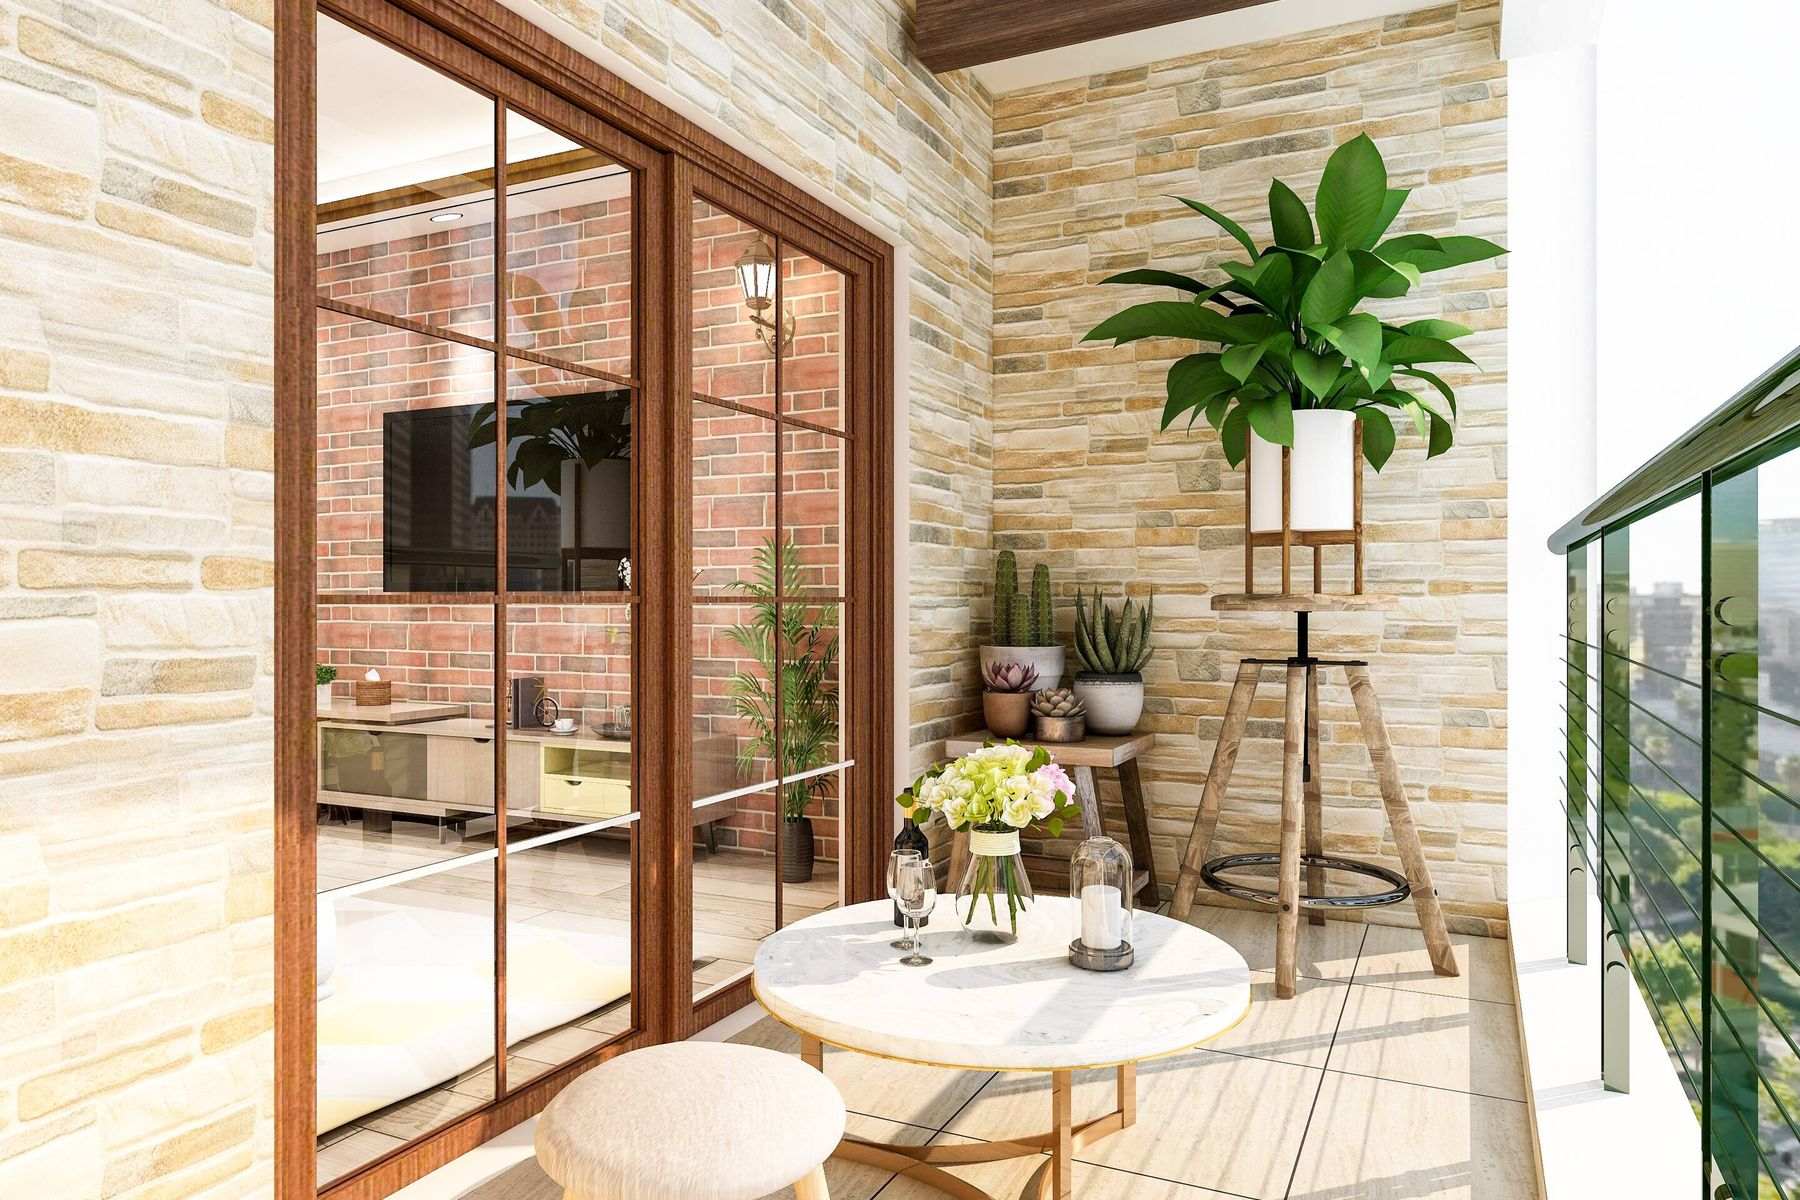 How to Keep Your Balcony Clean and Tidy | Get Set Clean